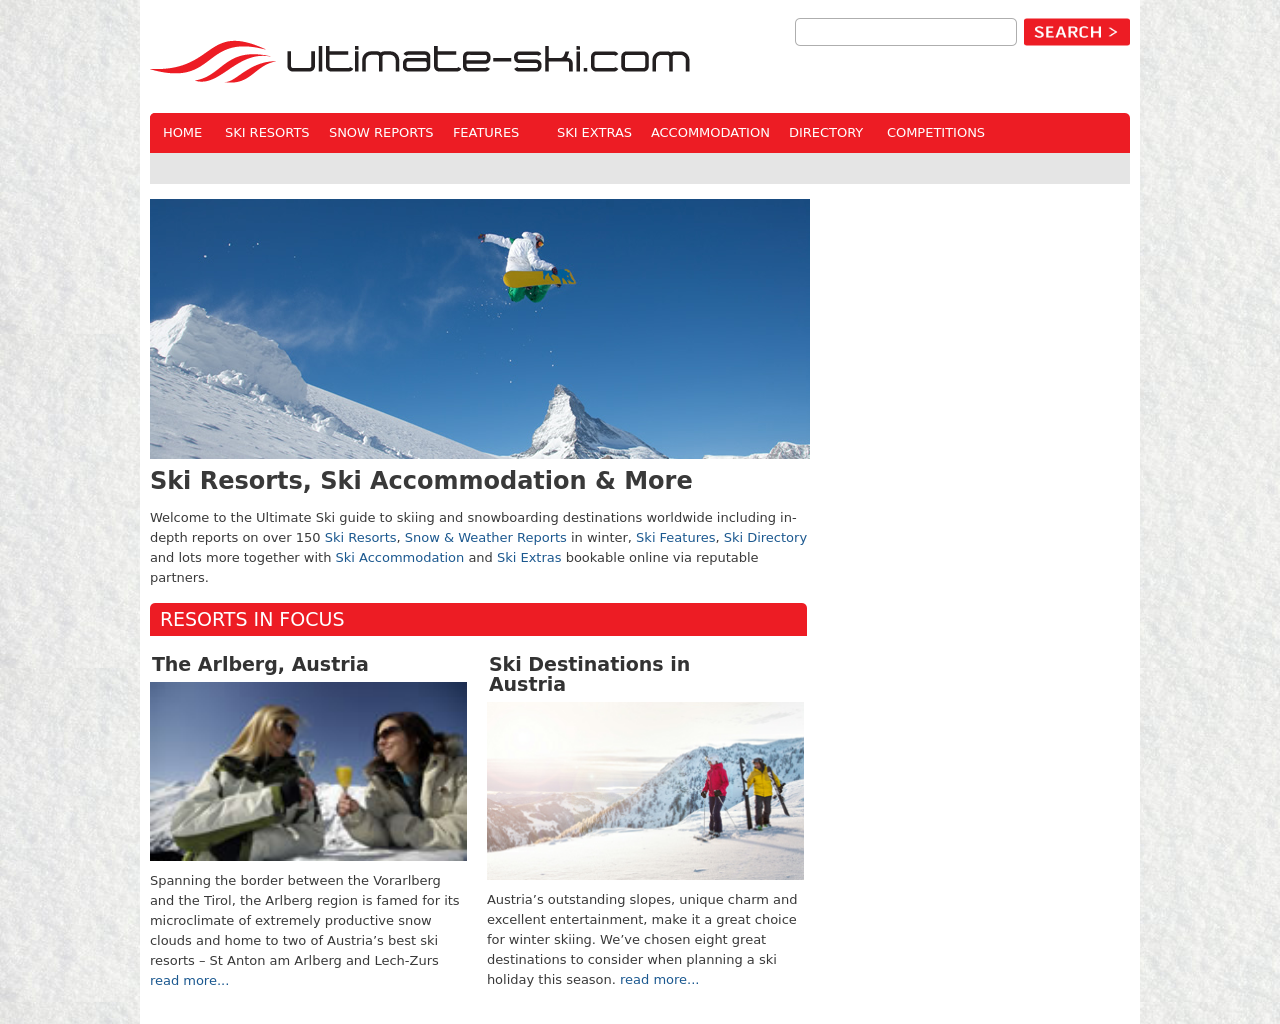 Ultimate-ski.com-Advertising-Reviews-Pricing